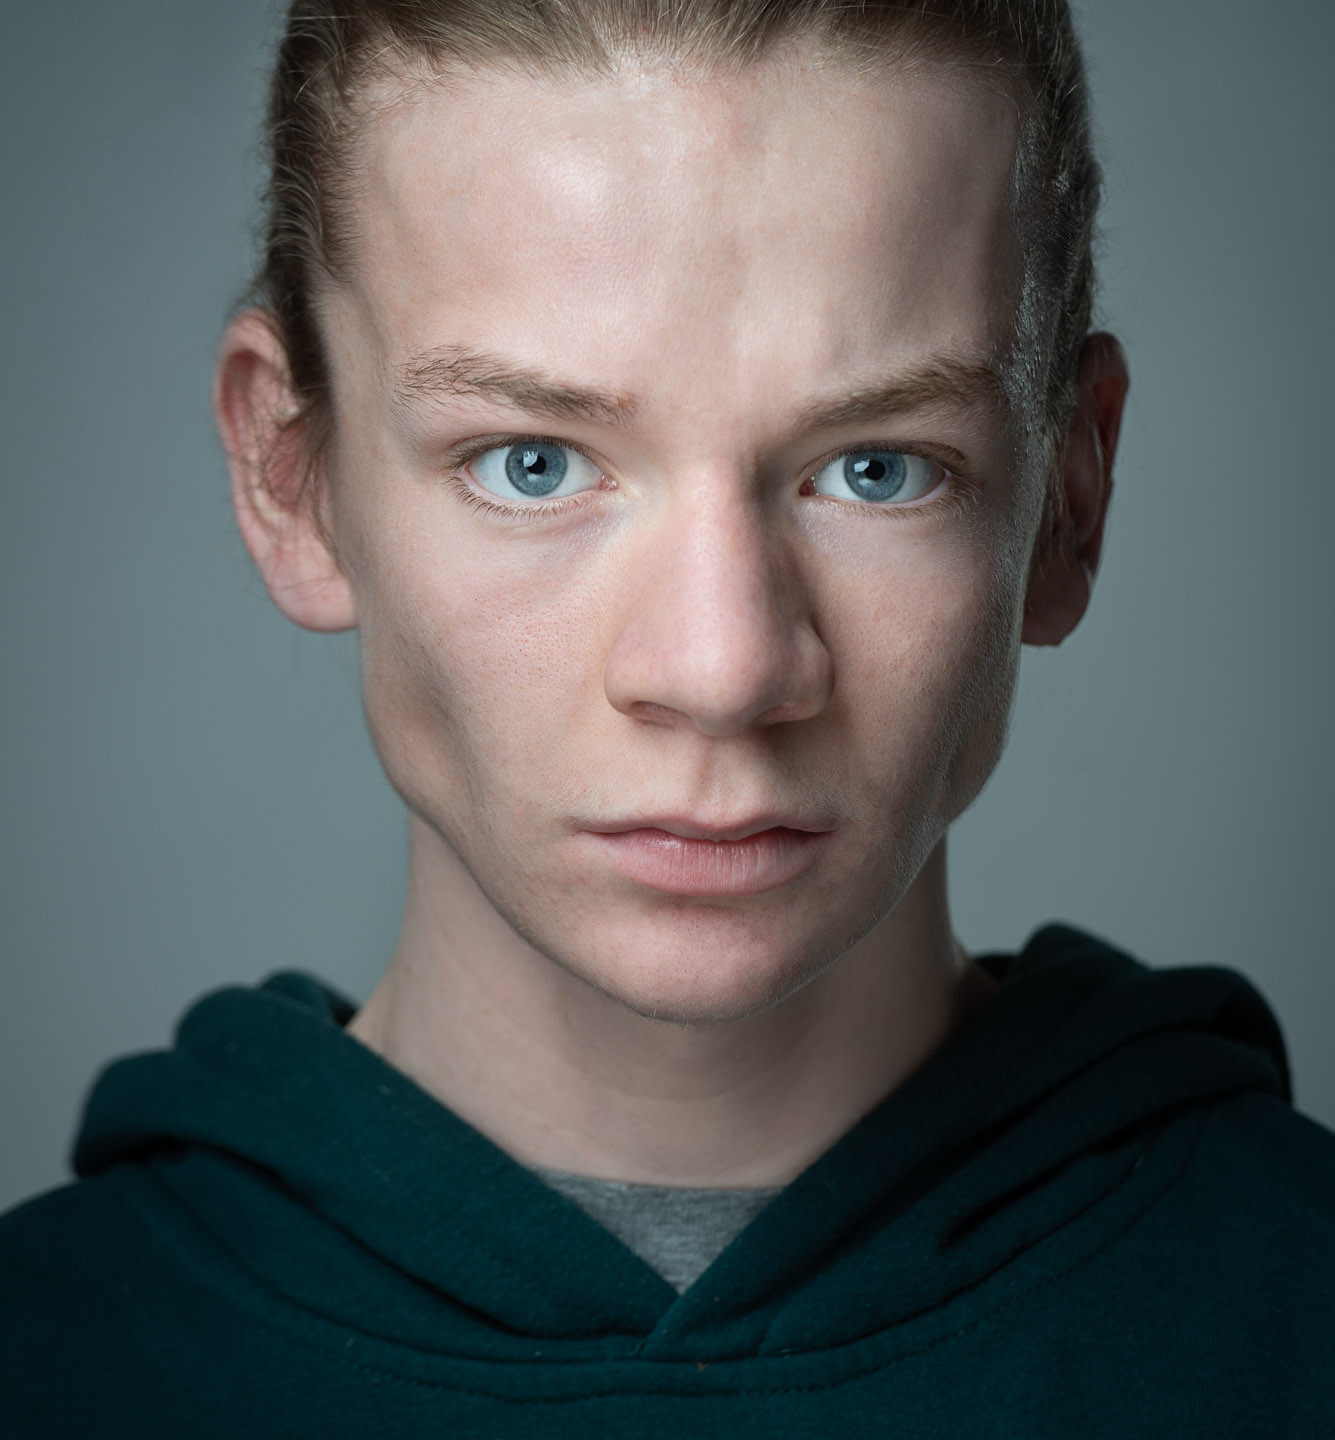 Actors Headshot, intense close up of a young performer with long brown hair tight up behind and blue eyes on light grey dark background